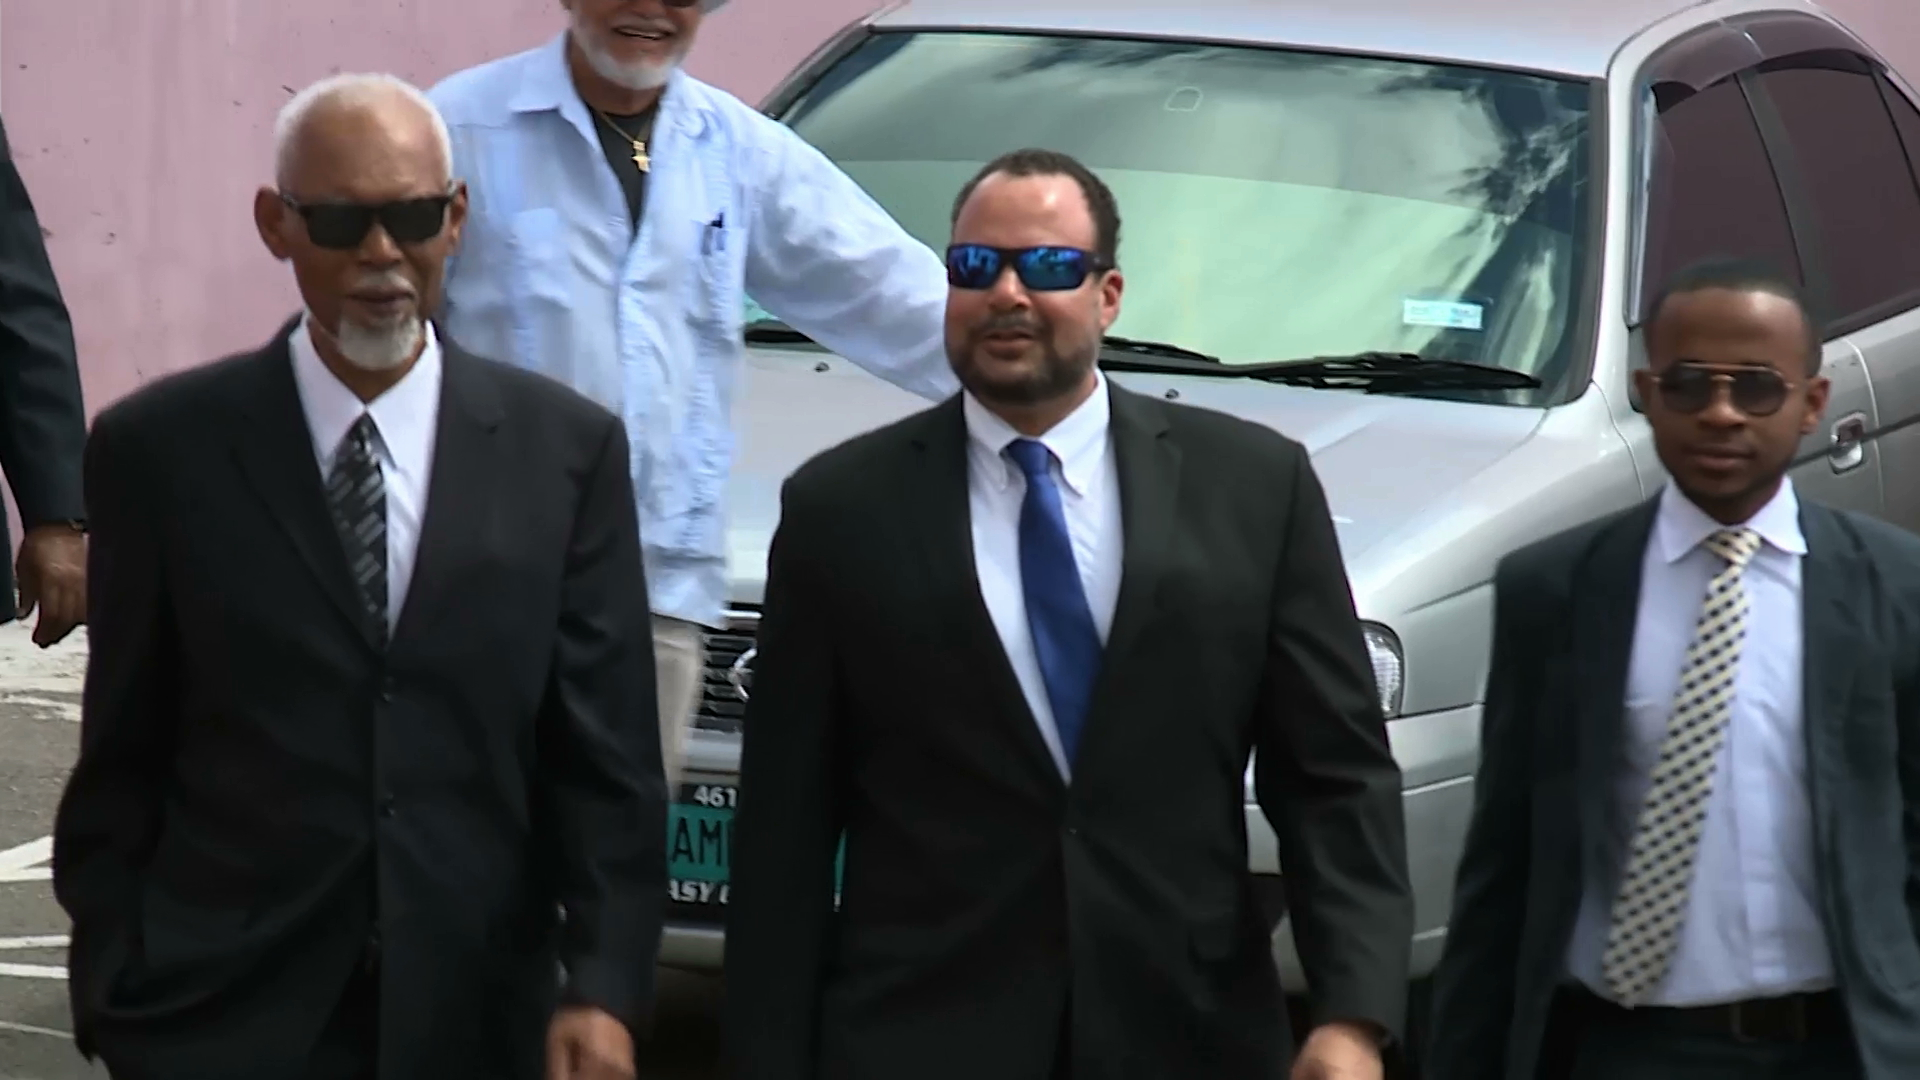 Frank Smith acquitted of bribery and extortion charges